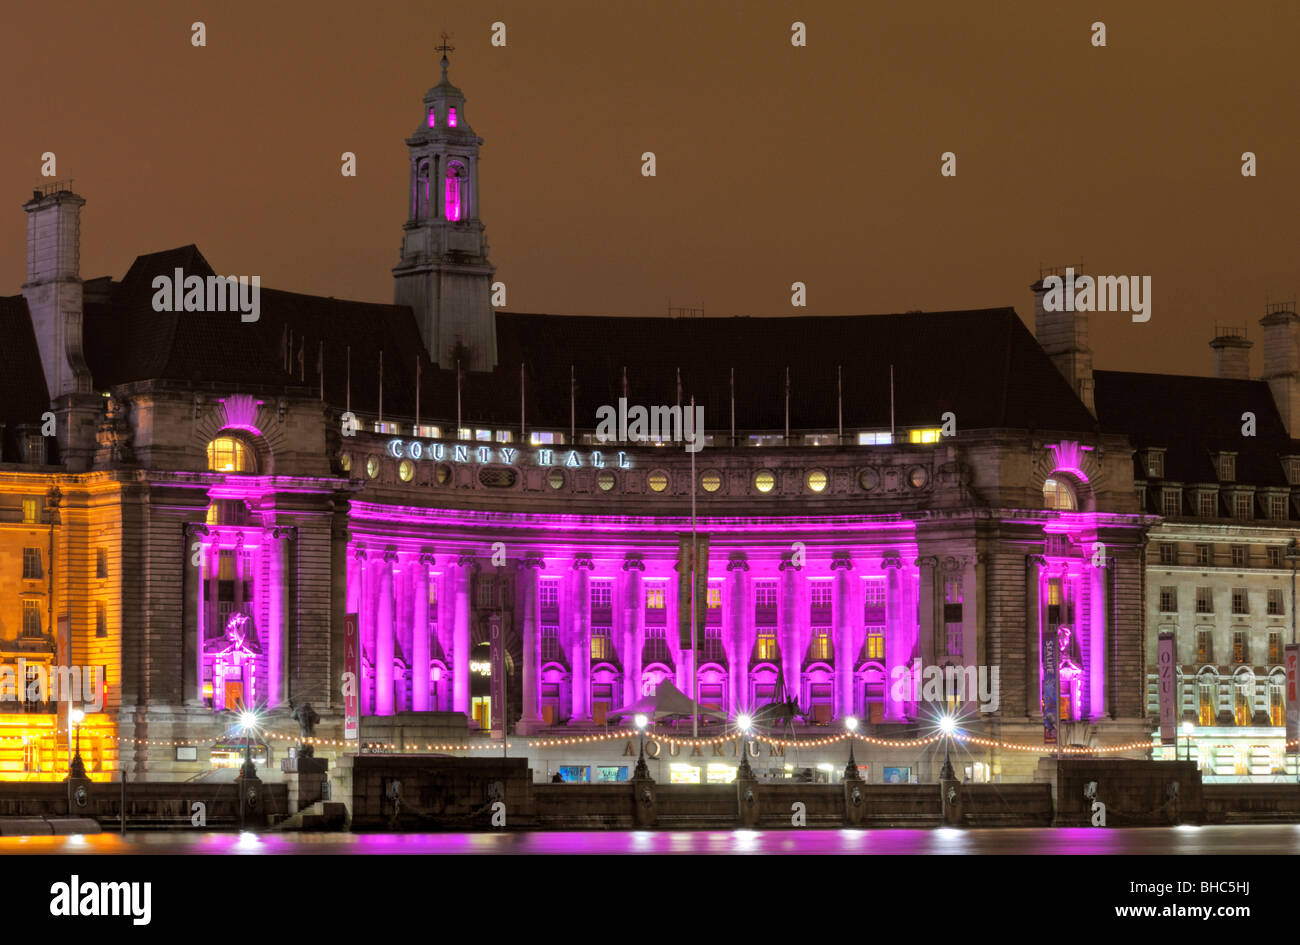 Nigh time at an illuminated County Hall, South Bank, London SE1, United Kingdom - Stock Image